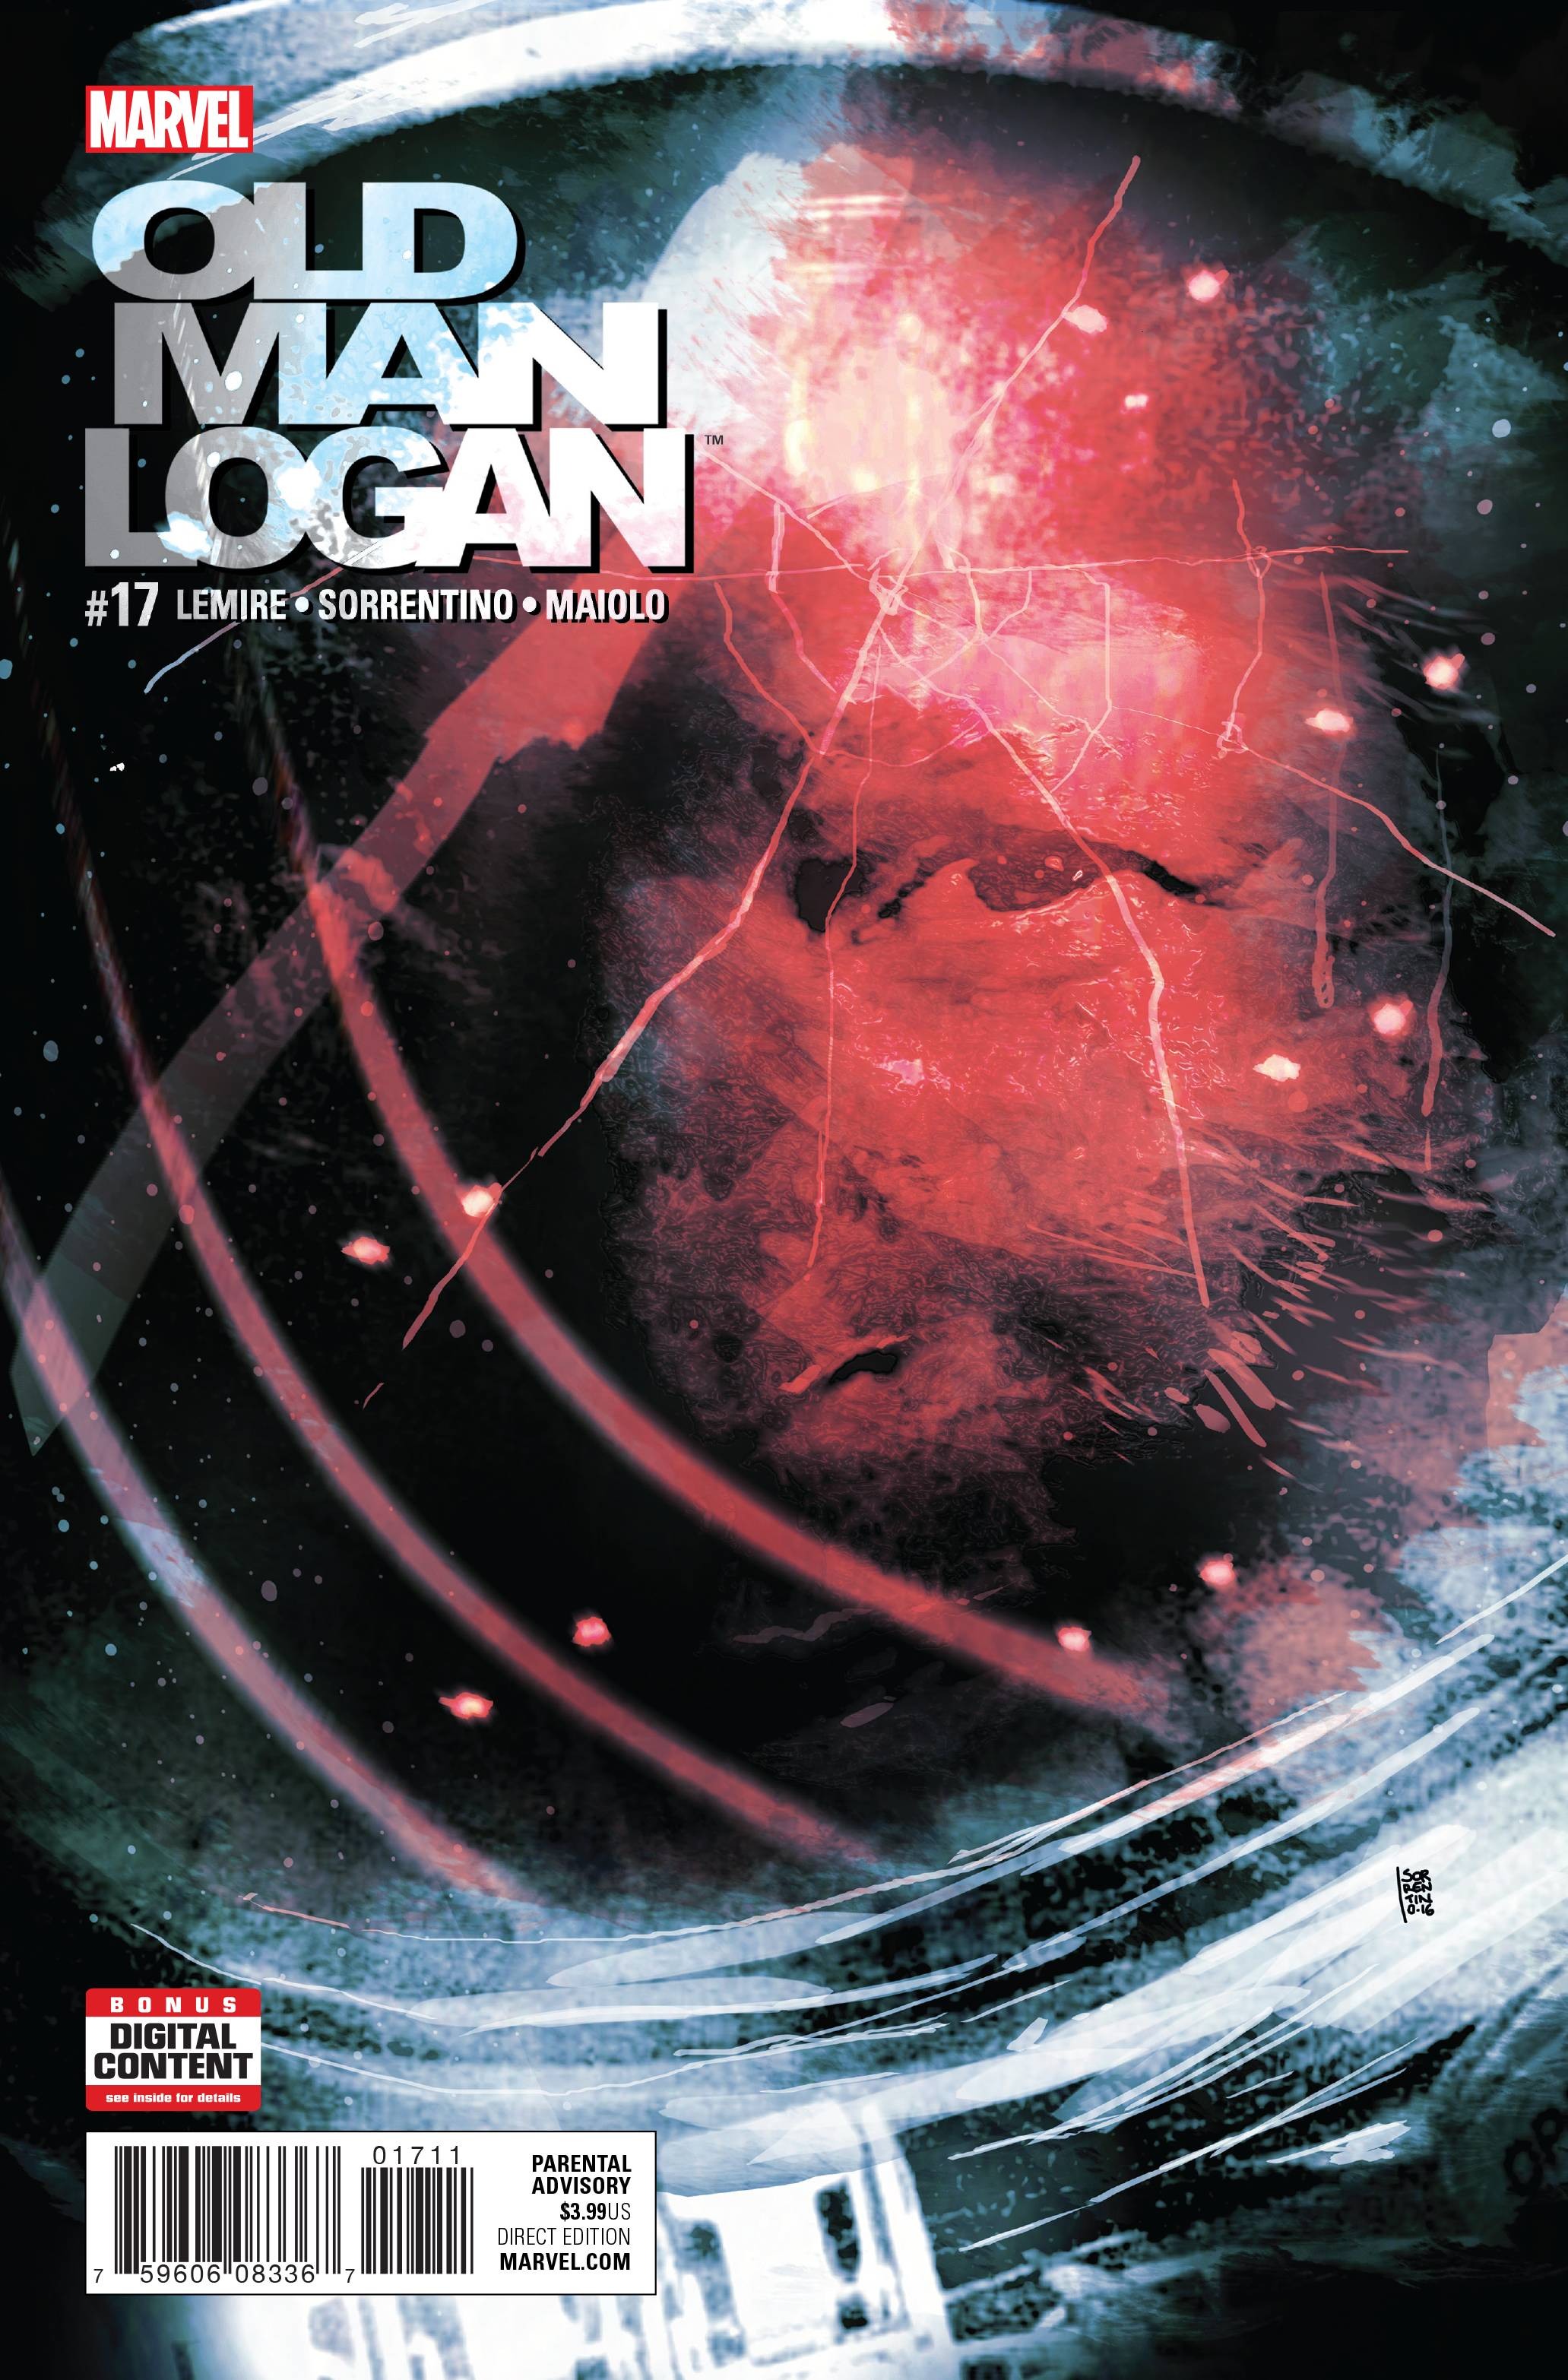 OLD MAN LOGAN #17